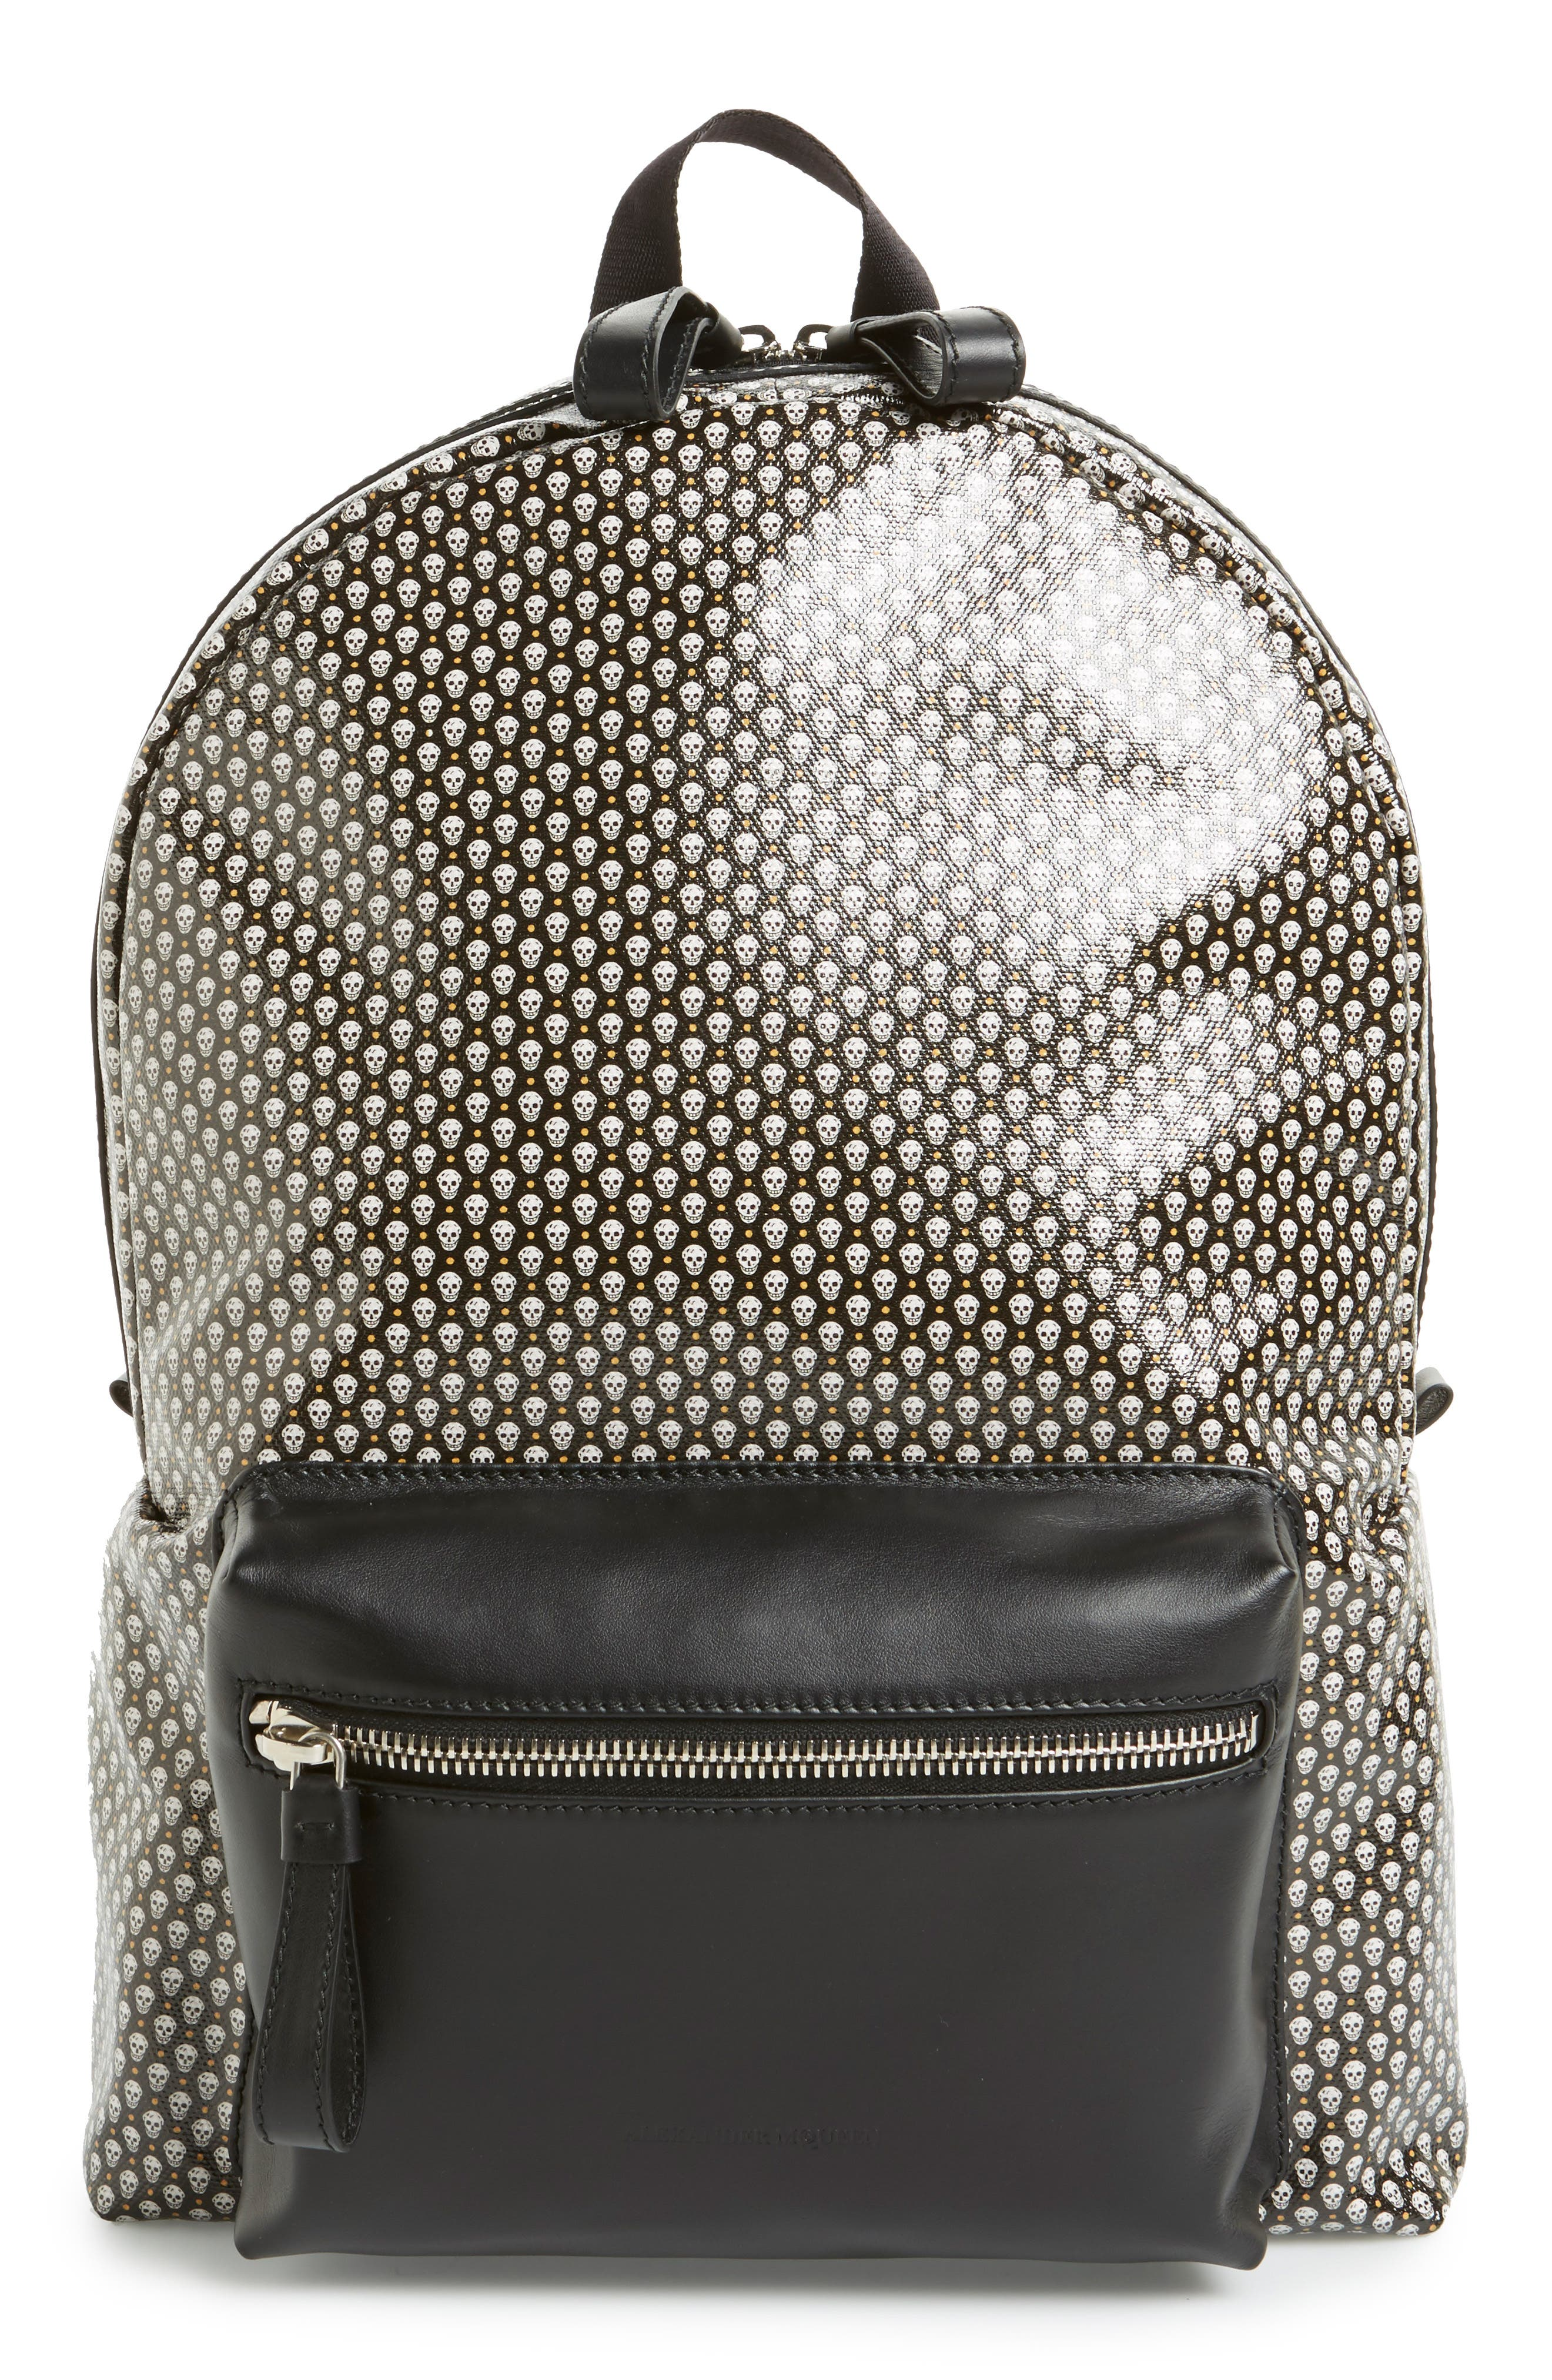 ALEXANDER MCQUEEN Skull Print Coated Canvas Backpack with Leather Trim